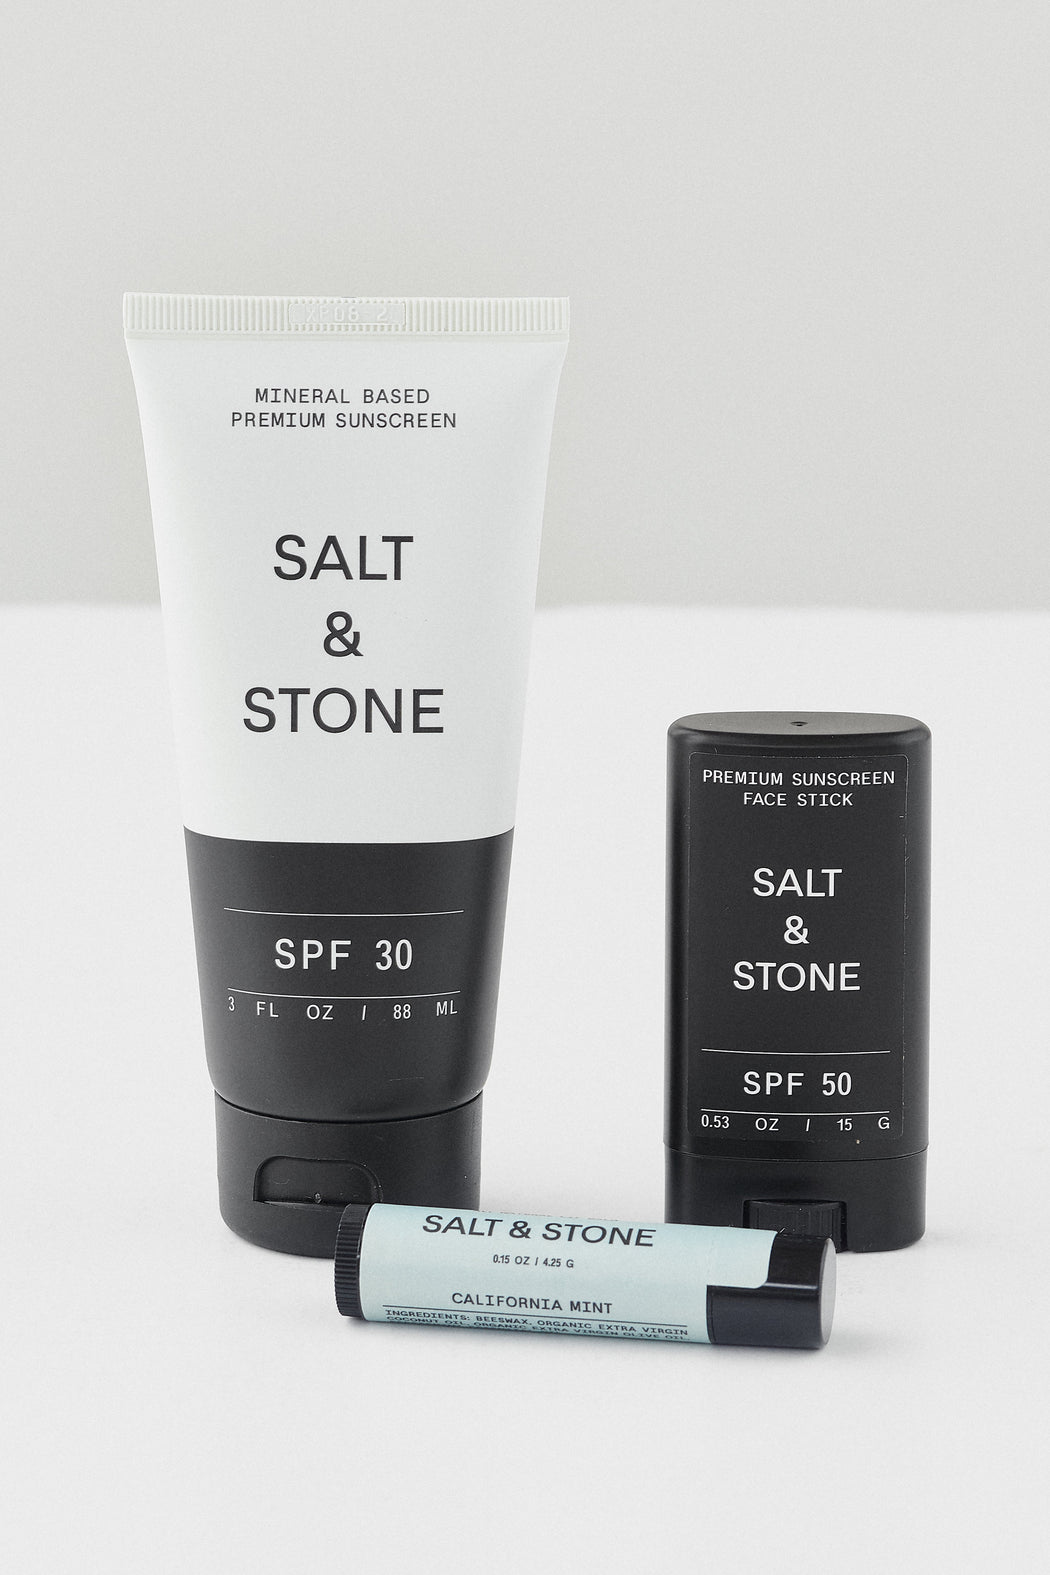 SALT & STONE SUNSCREEN LOTION SPF 30